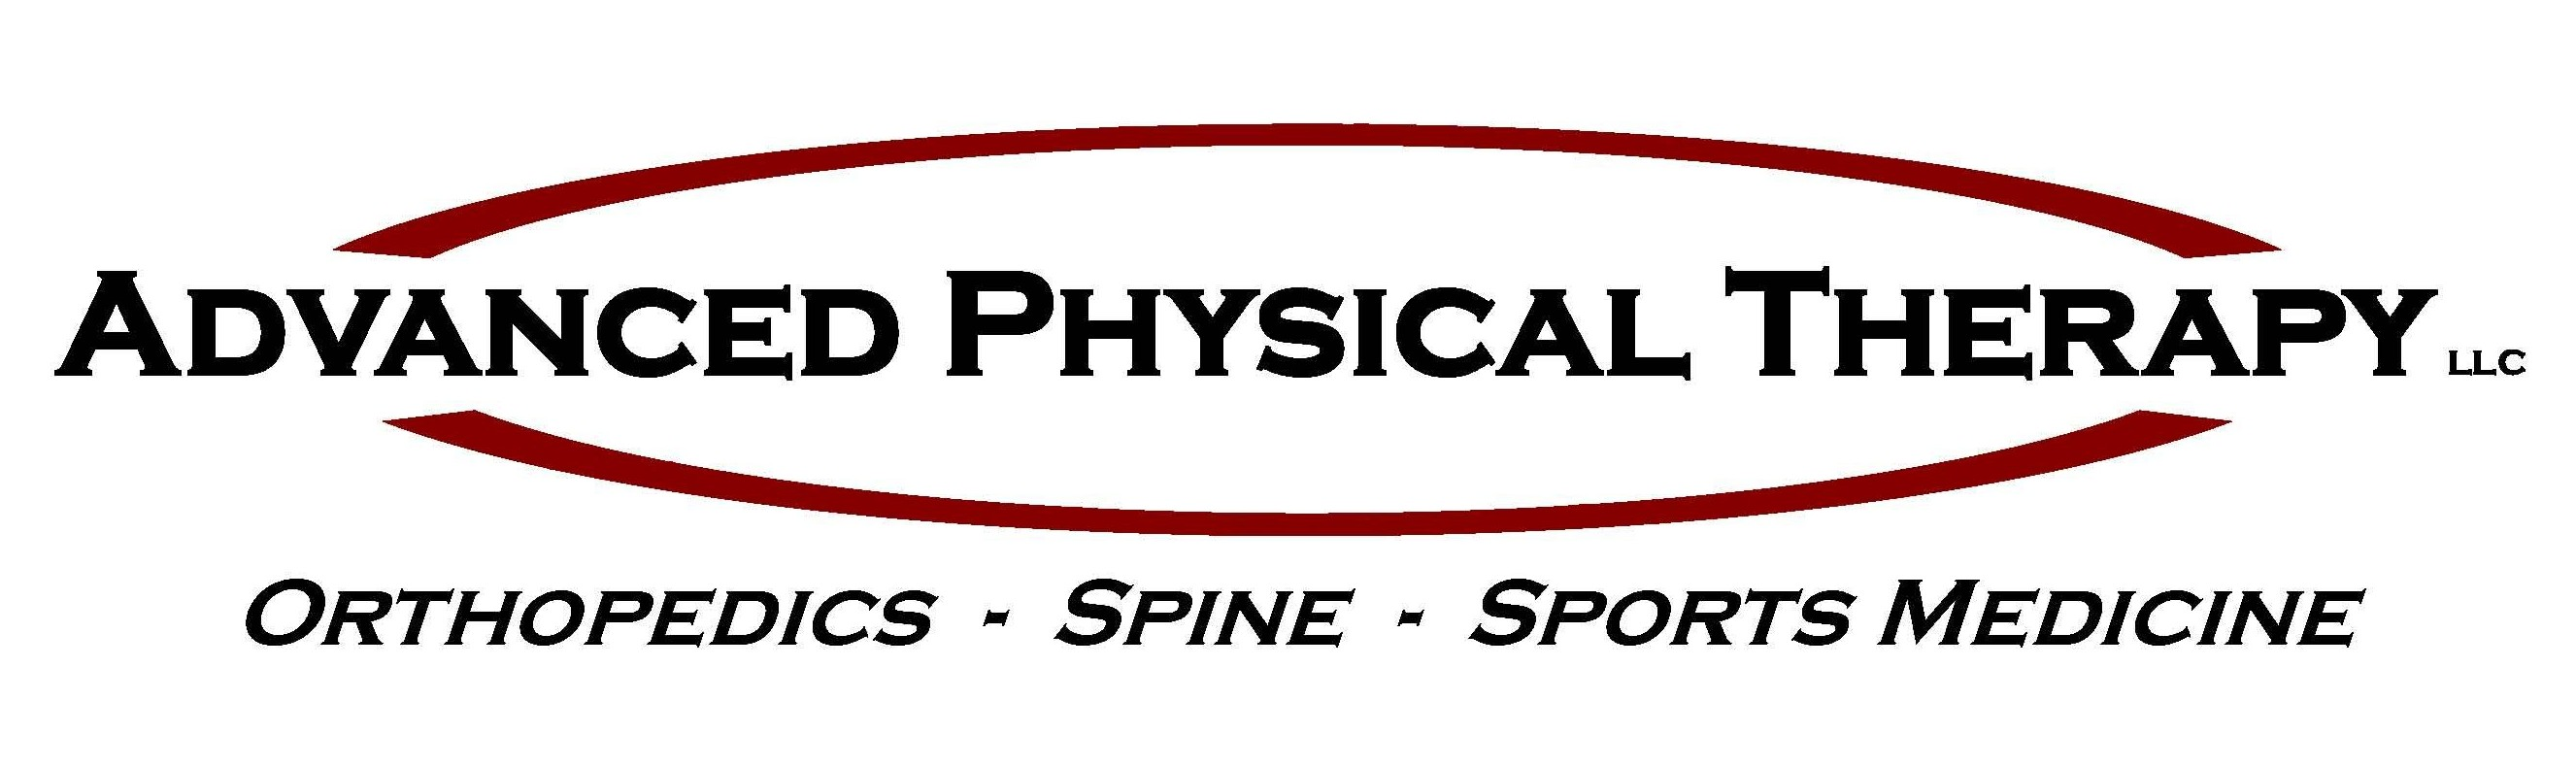 Advance physical therapy - Advanced Physical Therapy